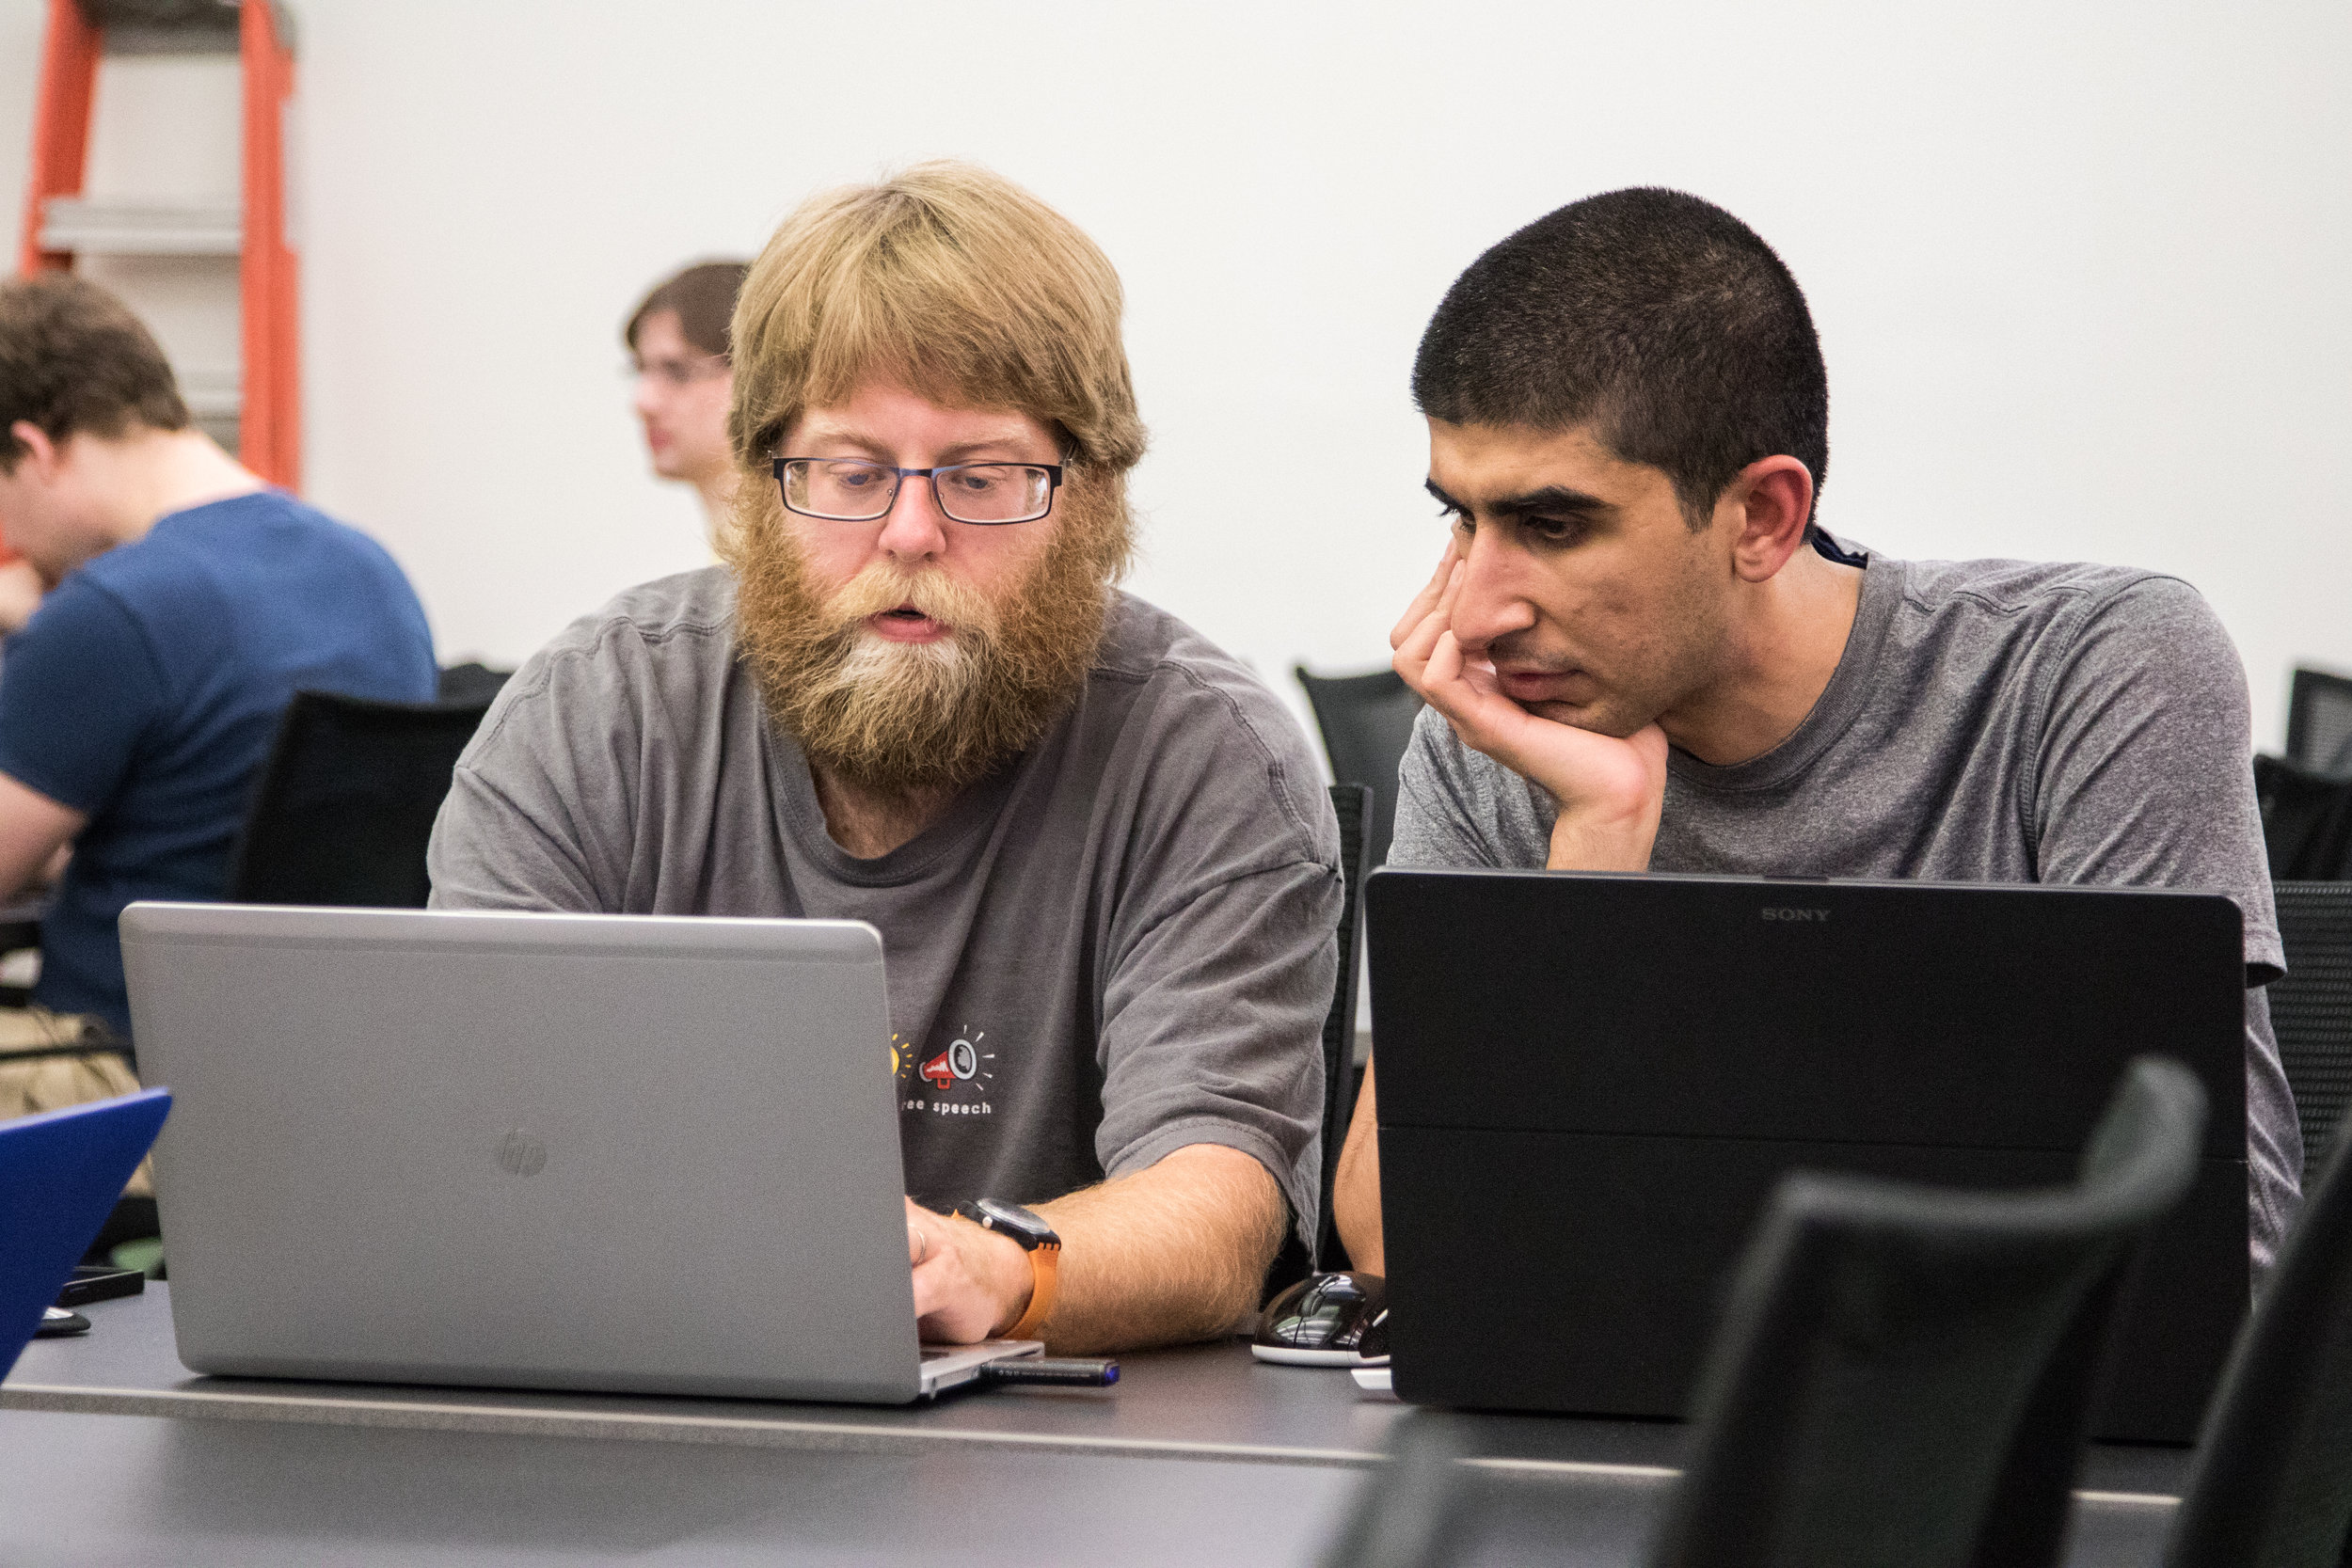 Code Louisville training session